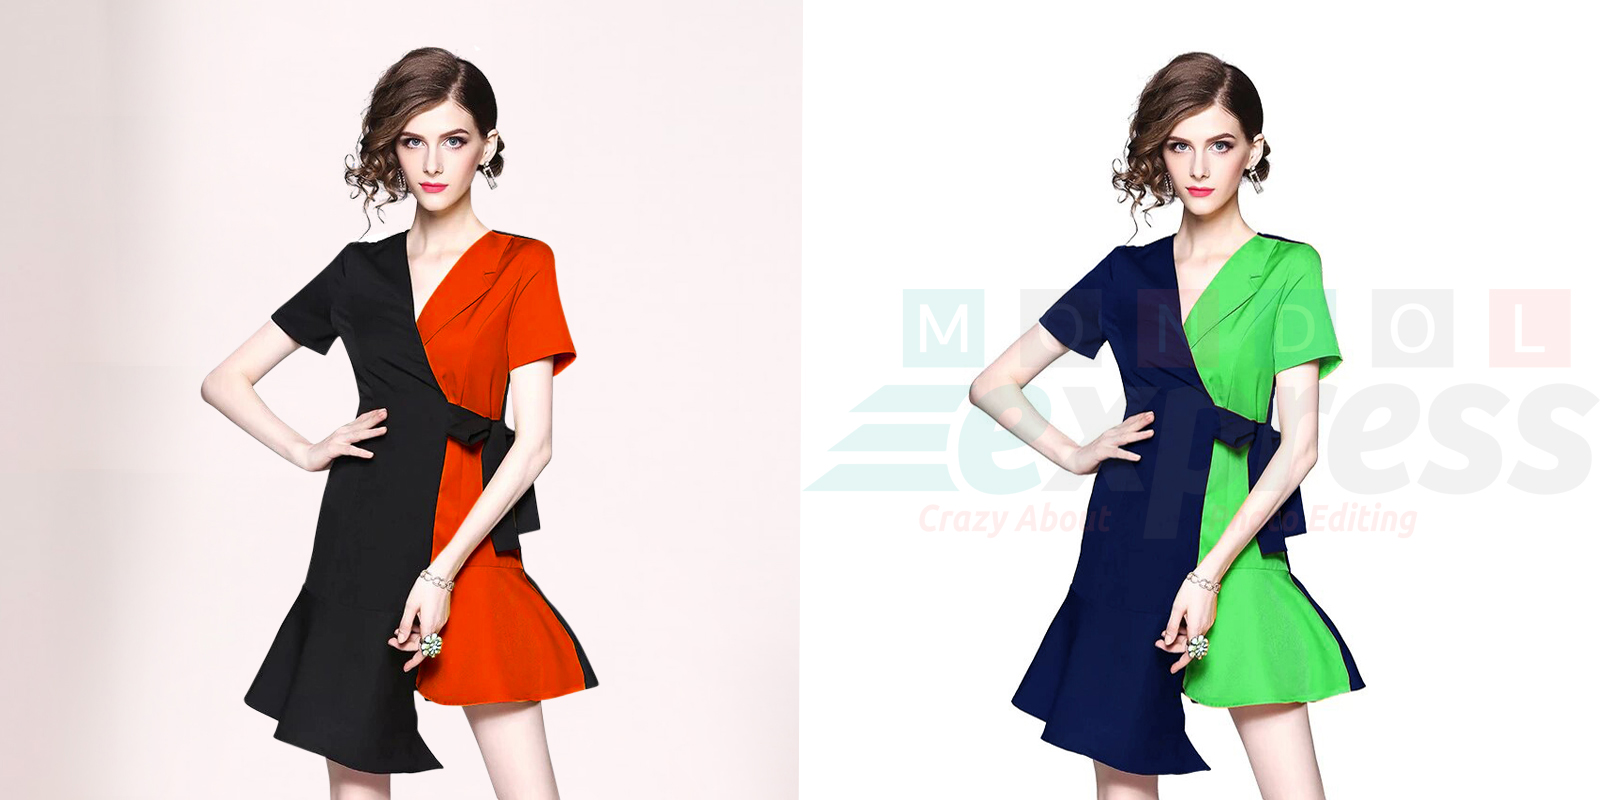 Color Correction model images